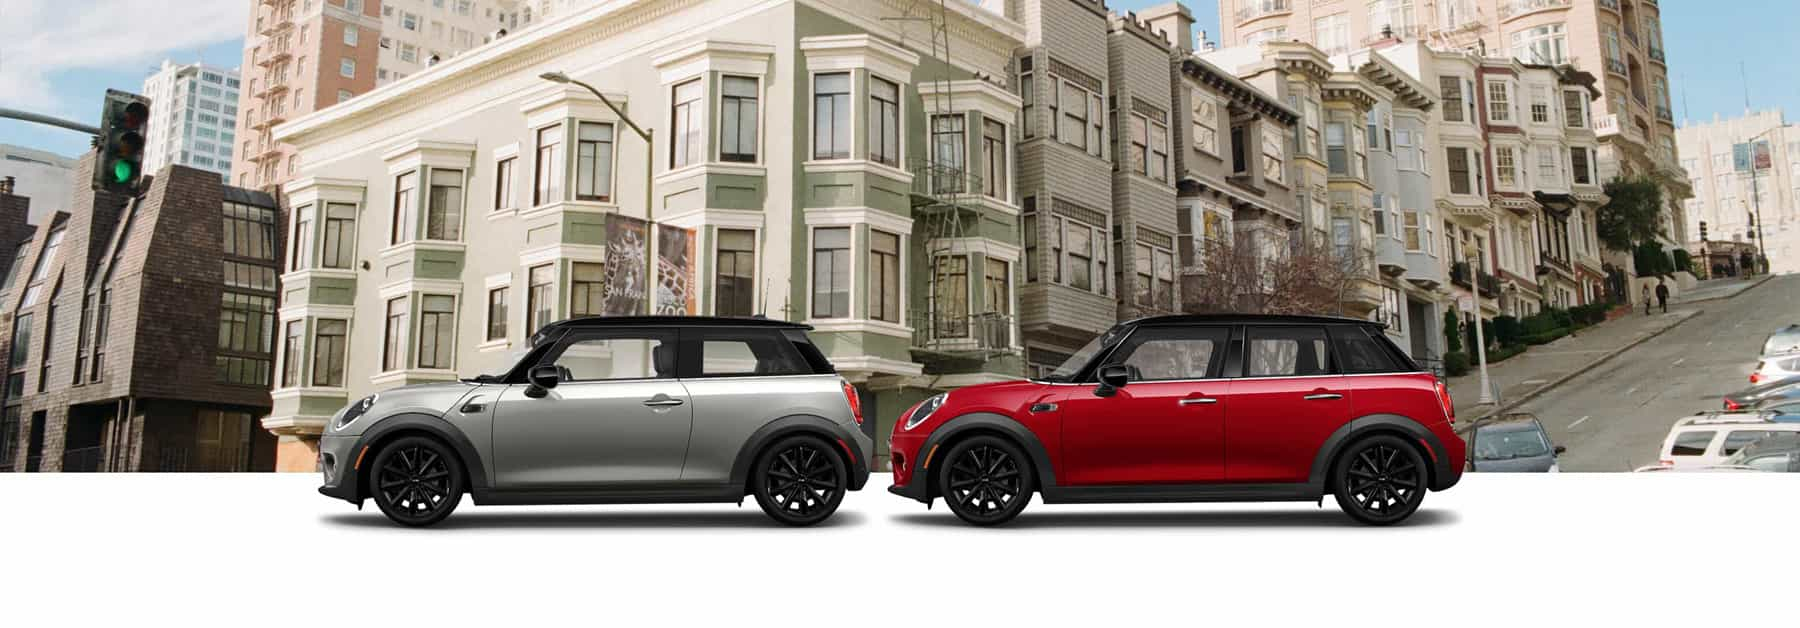 MINI Grey Oxford Edition MINI  Cooper 2 Door Hardtop and Red Oxford Edition MINI  Cooper 4 Door Hardtop in front of cityscape.